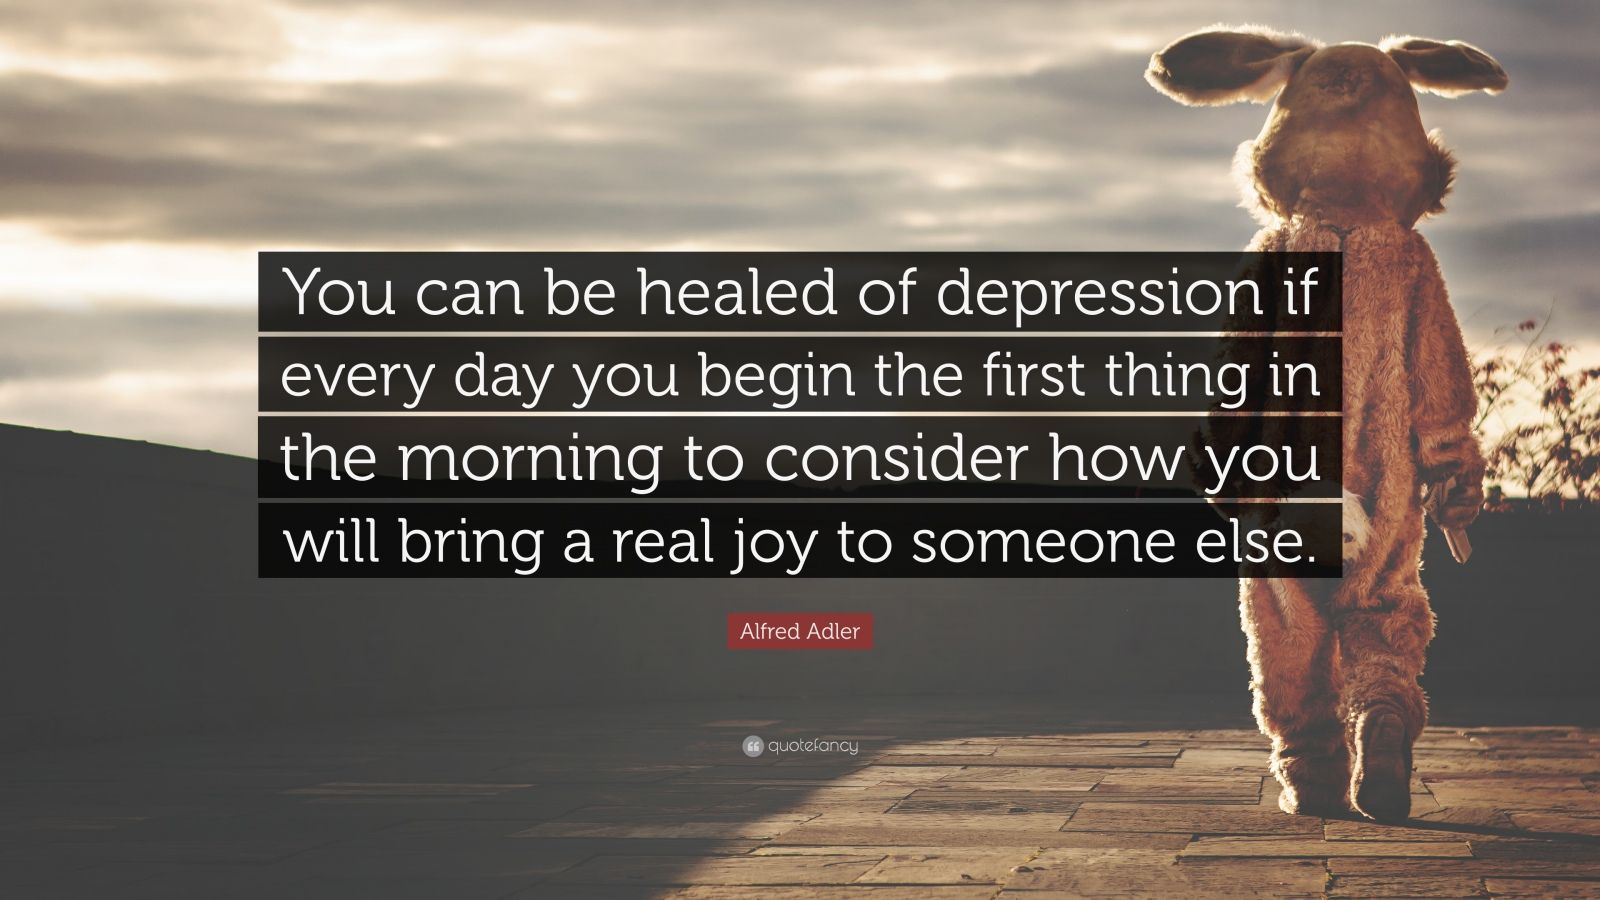 """Alfred Adler Quote: """"You can be healed of depression if every day you begin the first thing in the morning to consider how you will bring a real joy to someone else."""""""